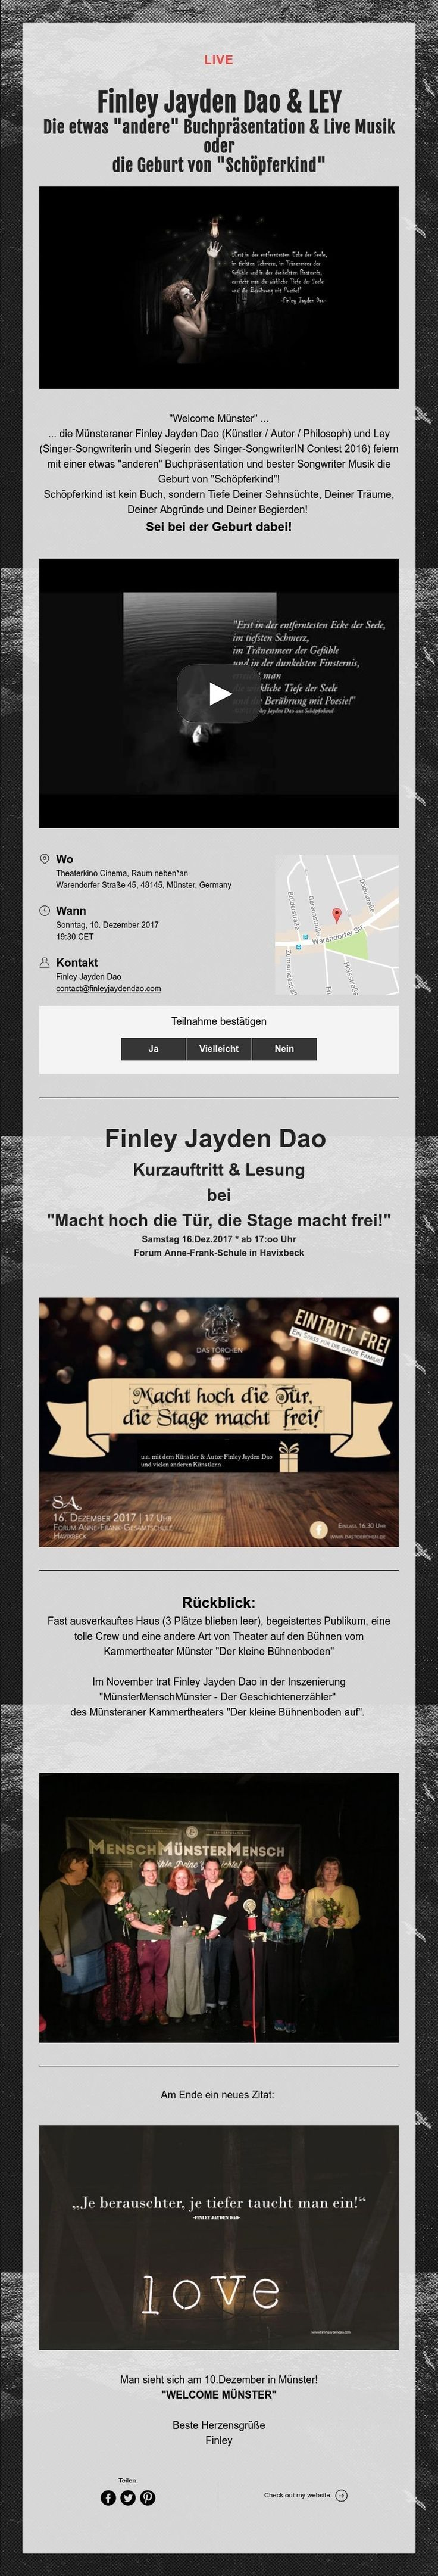 Live! Finley Jayden Dao and Ley #bücher #event #musik #zitate #theater #kunst #kultur